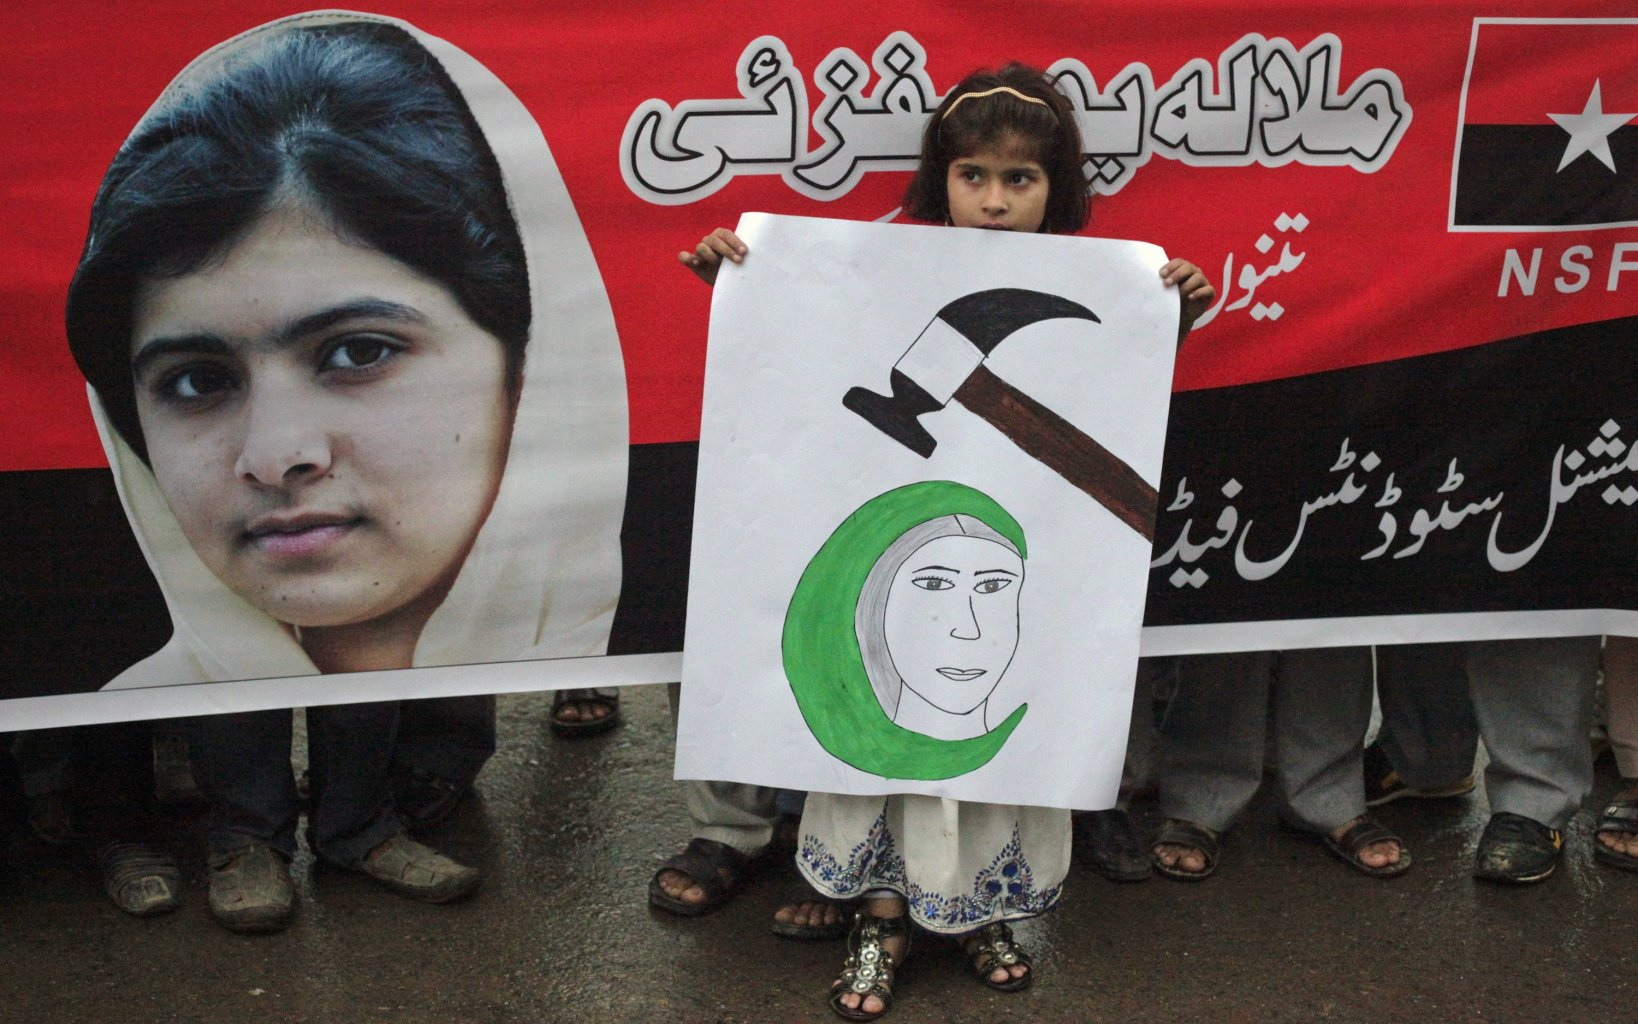 A girl holds a placard next to an image of schoolgirl Malala Yousufzai, who was shot on October 9 by the Taliban, during a rally organized by National Students Federation (NSF) in Lahore October 15, 2012. Yousufzai, 14, who was shot by Taliban gunmen for pushing for girls to be educated, has been sent to the United Kingdom for medical treatment, a military spokesman said on Monday.